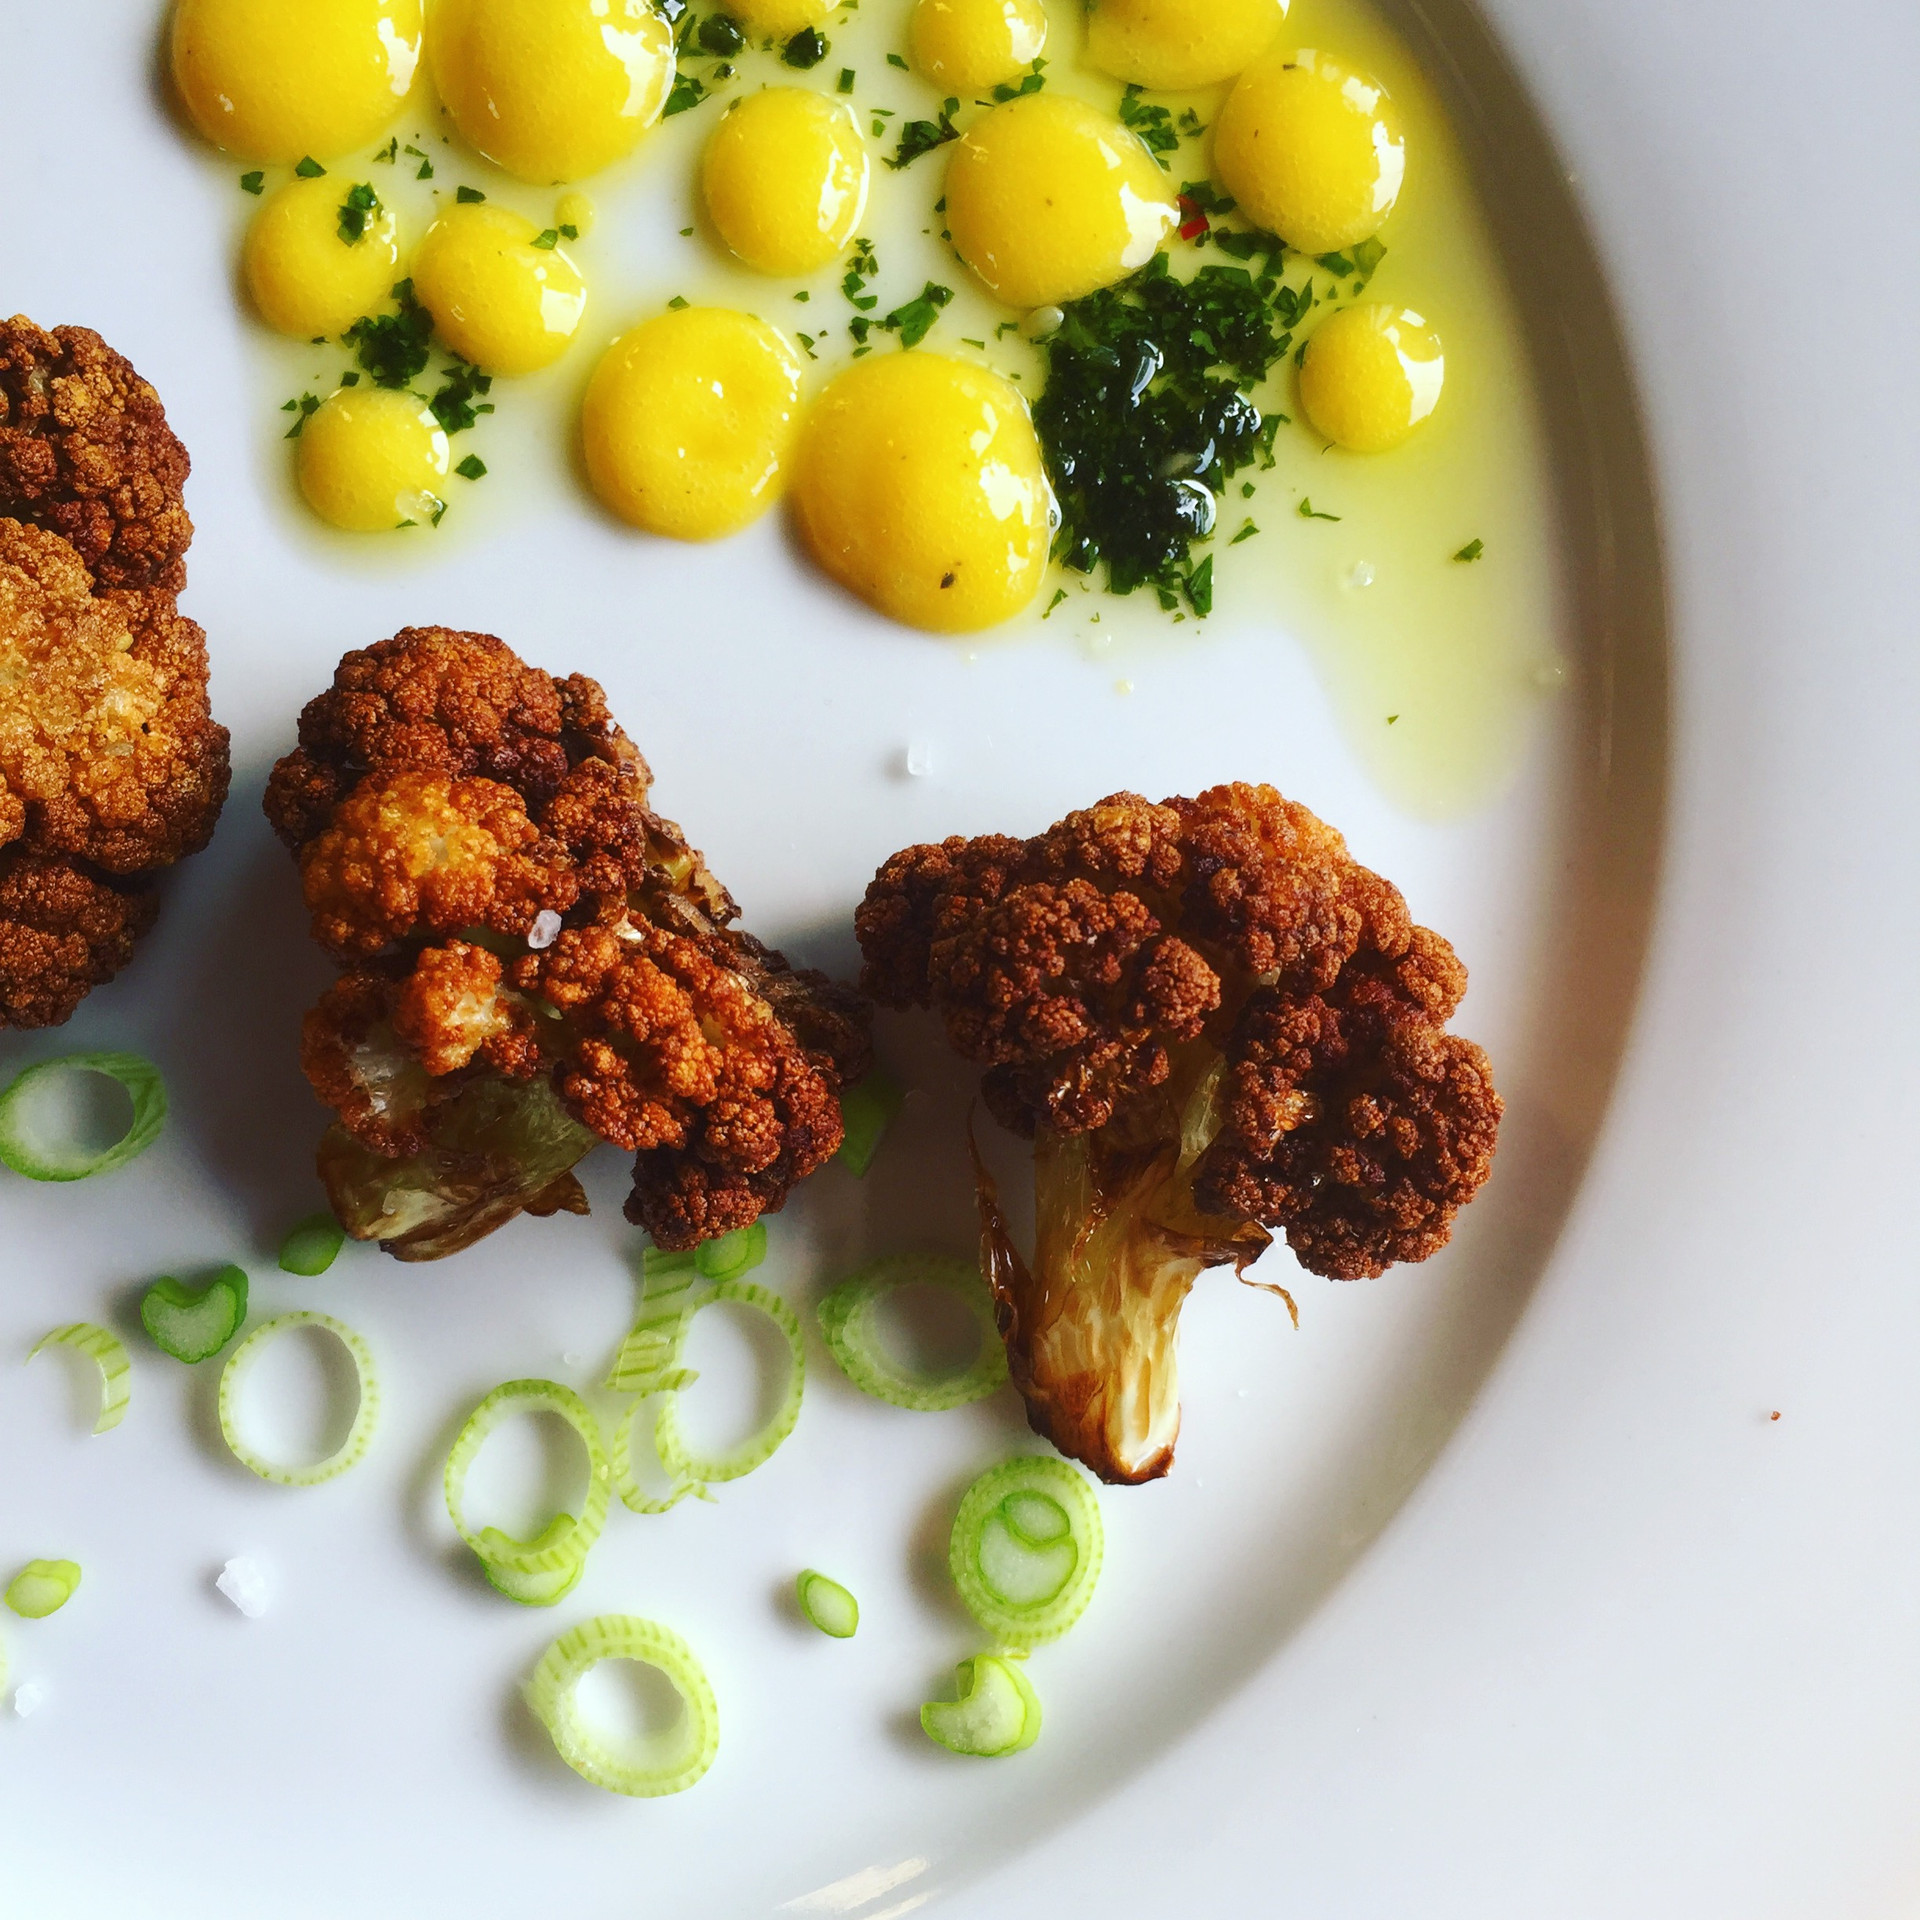 Fried Cauliflower w lemon curd and schuug